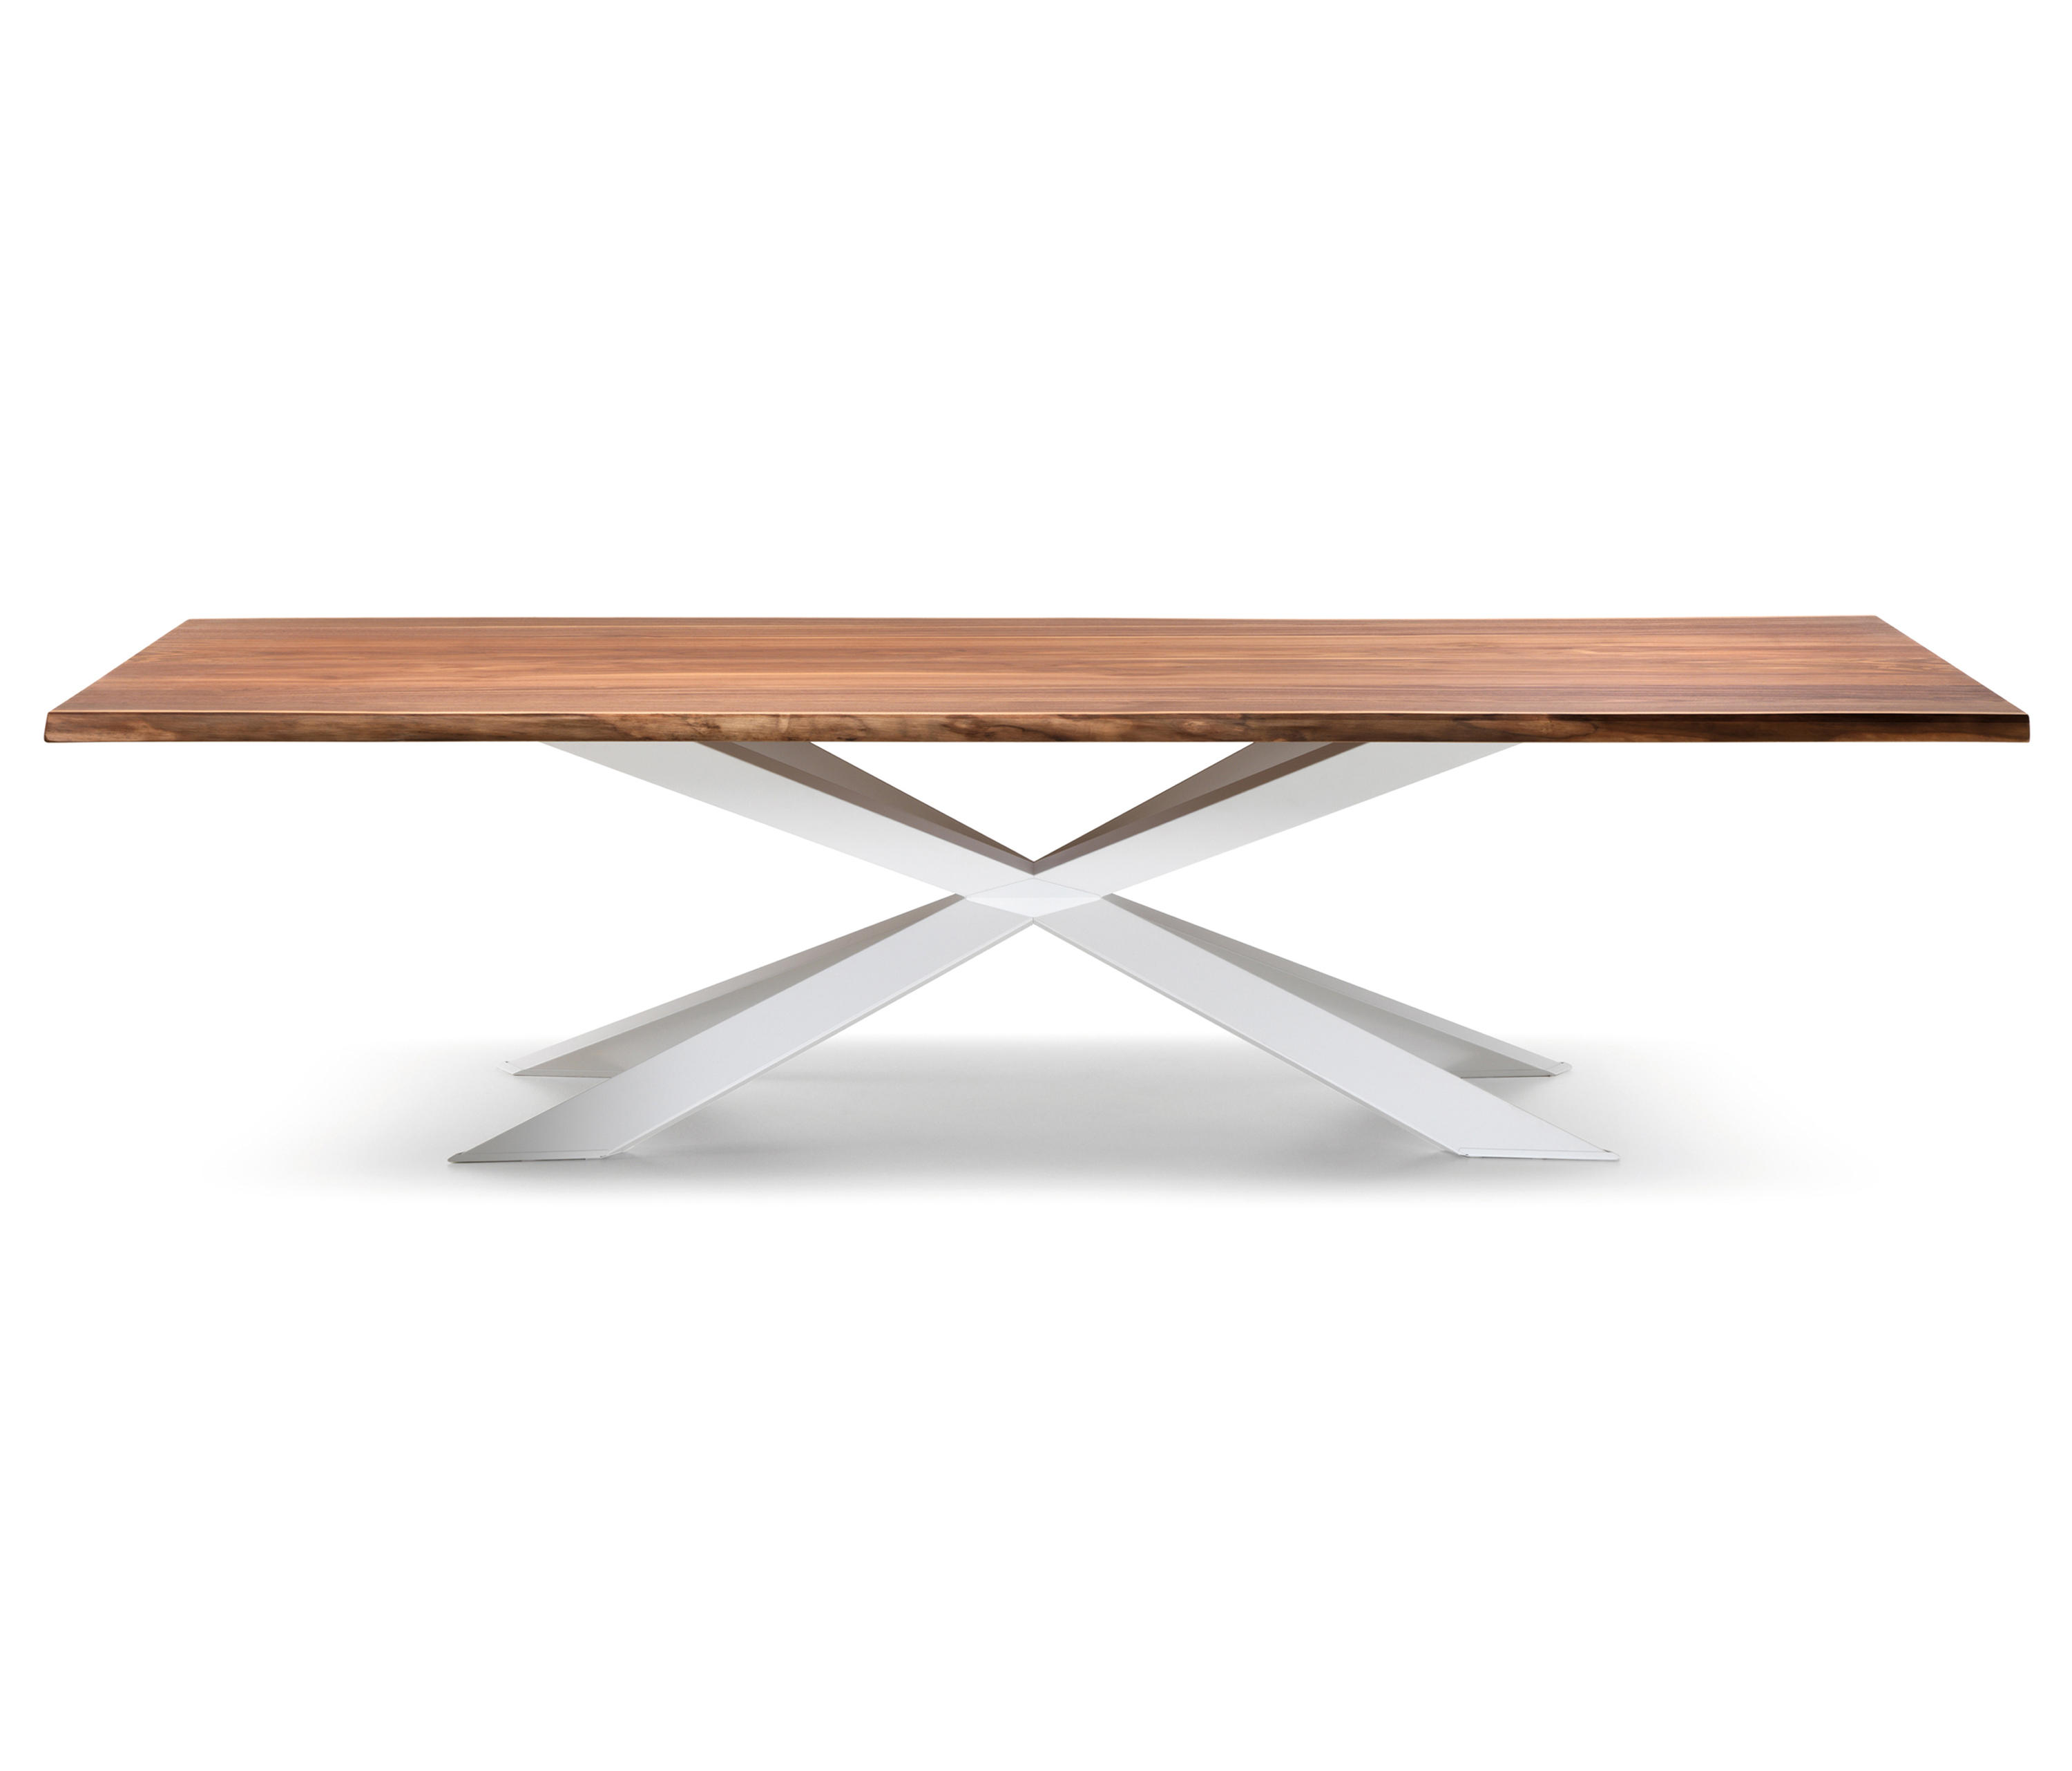 Tisch Cattelan Italia ~ SPYDER WOOD  Dining tables from Cattelan Italia  Architonic